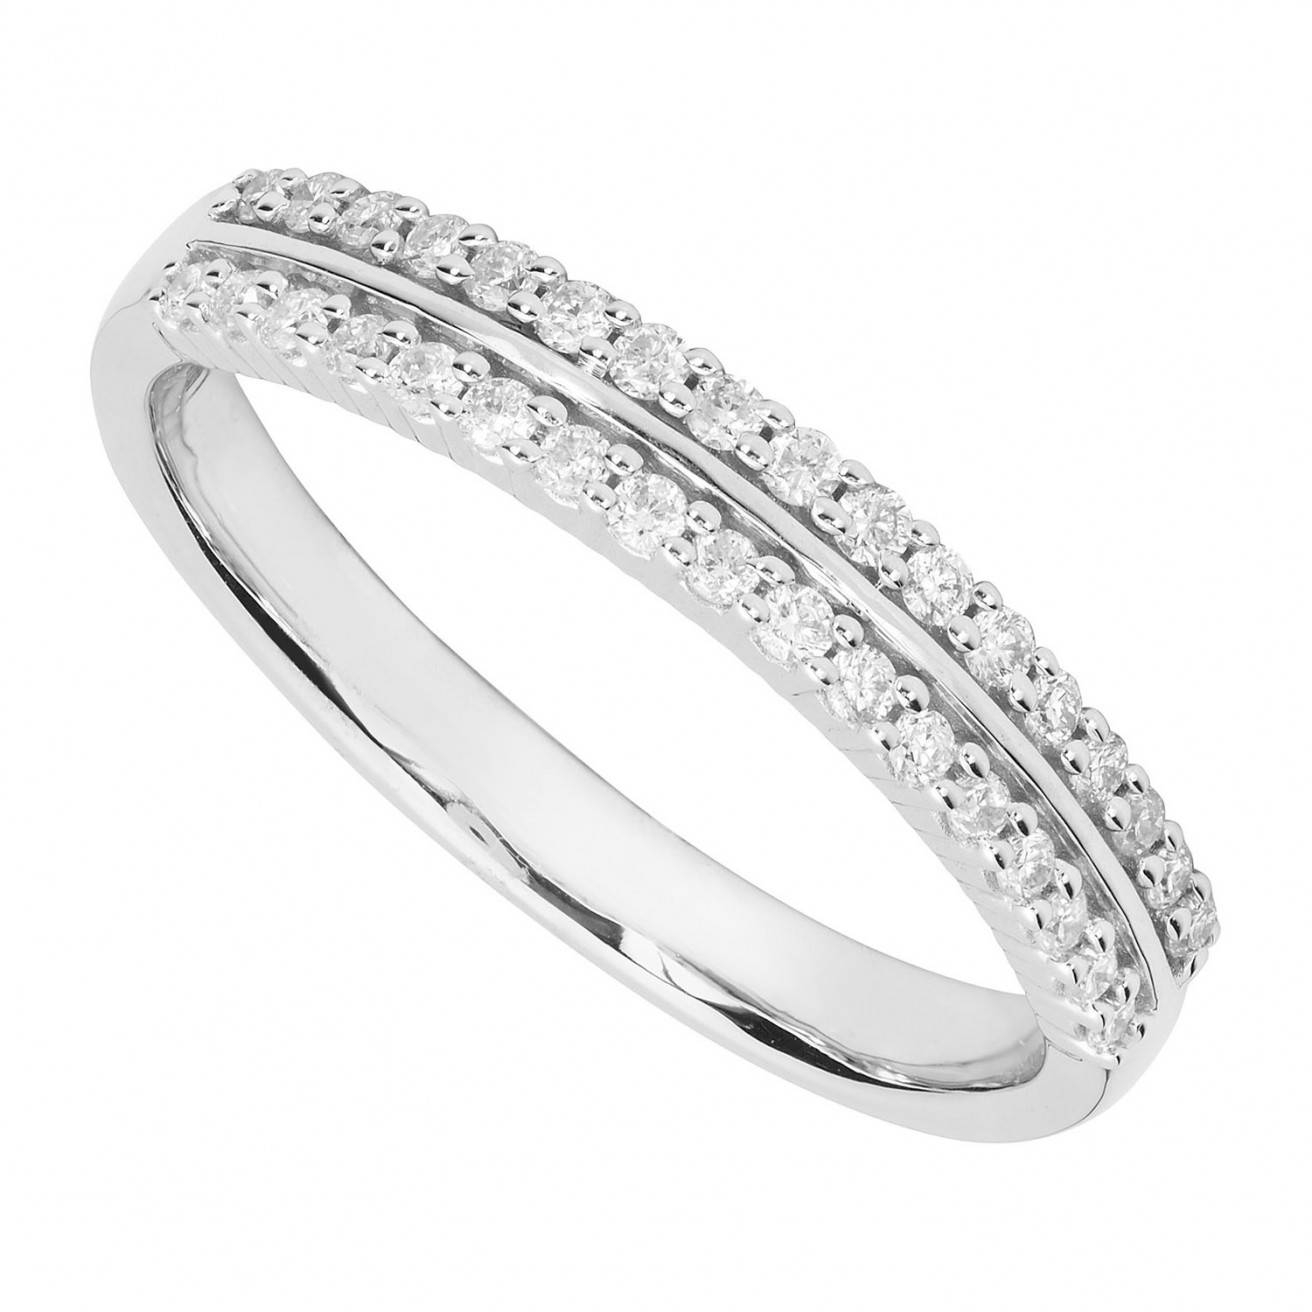 Wedding Rings : Wedding Rings Argos Wedding Rings Platinum Ladies In Most Popular Female Wedding Bands With Diamonds (View 13 of 15)